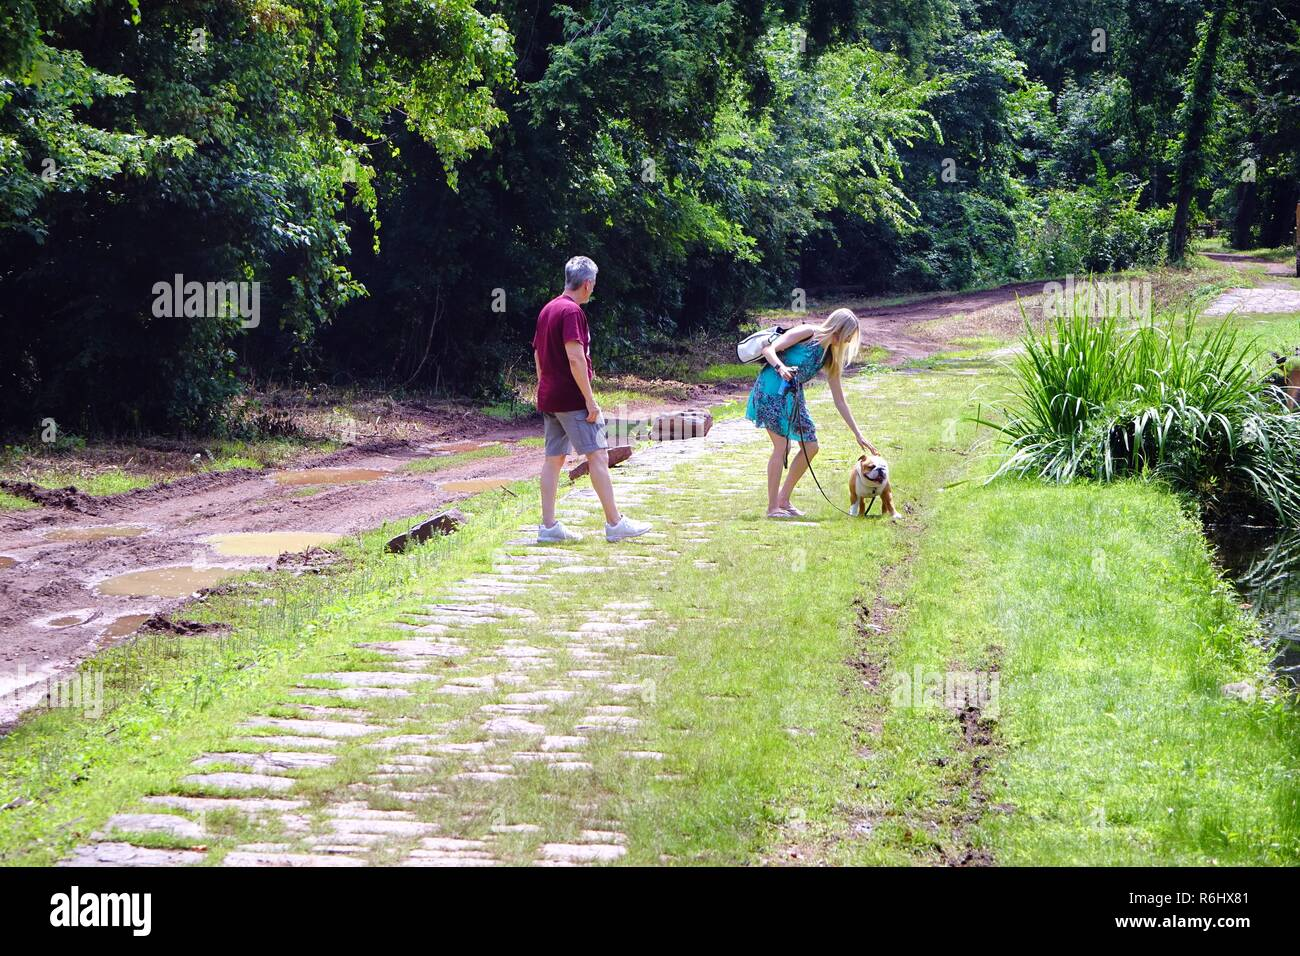 Hikers on the towpath of the Delaware and Raritan Canal: man, woman, dog - Stock Image